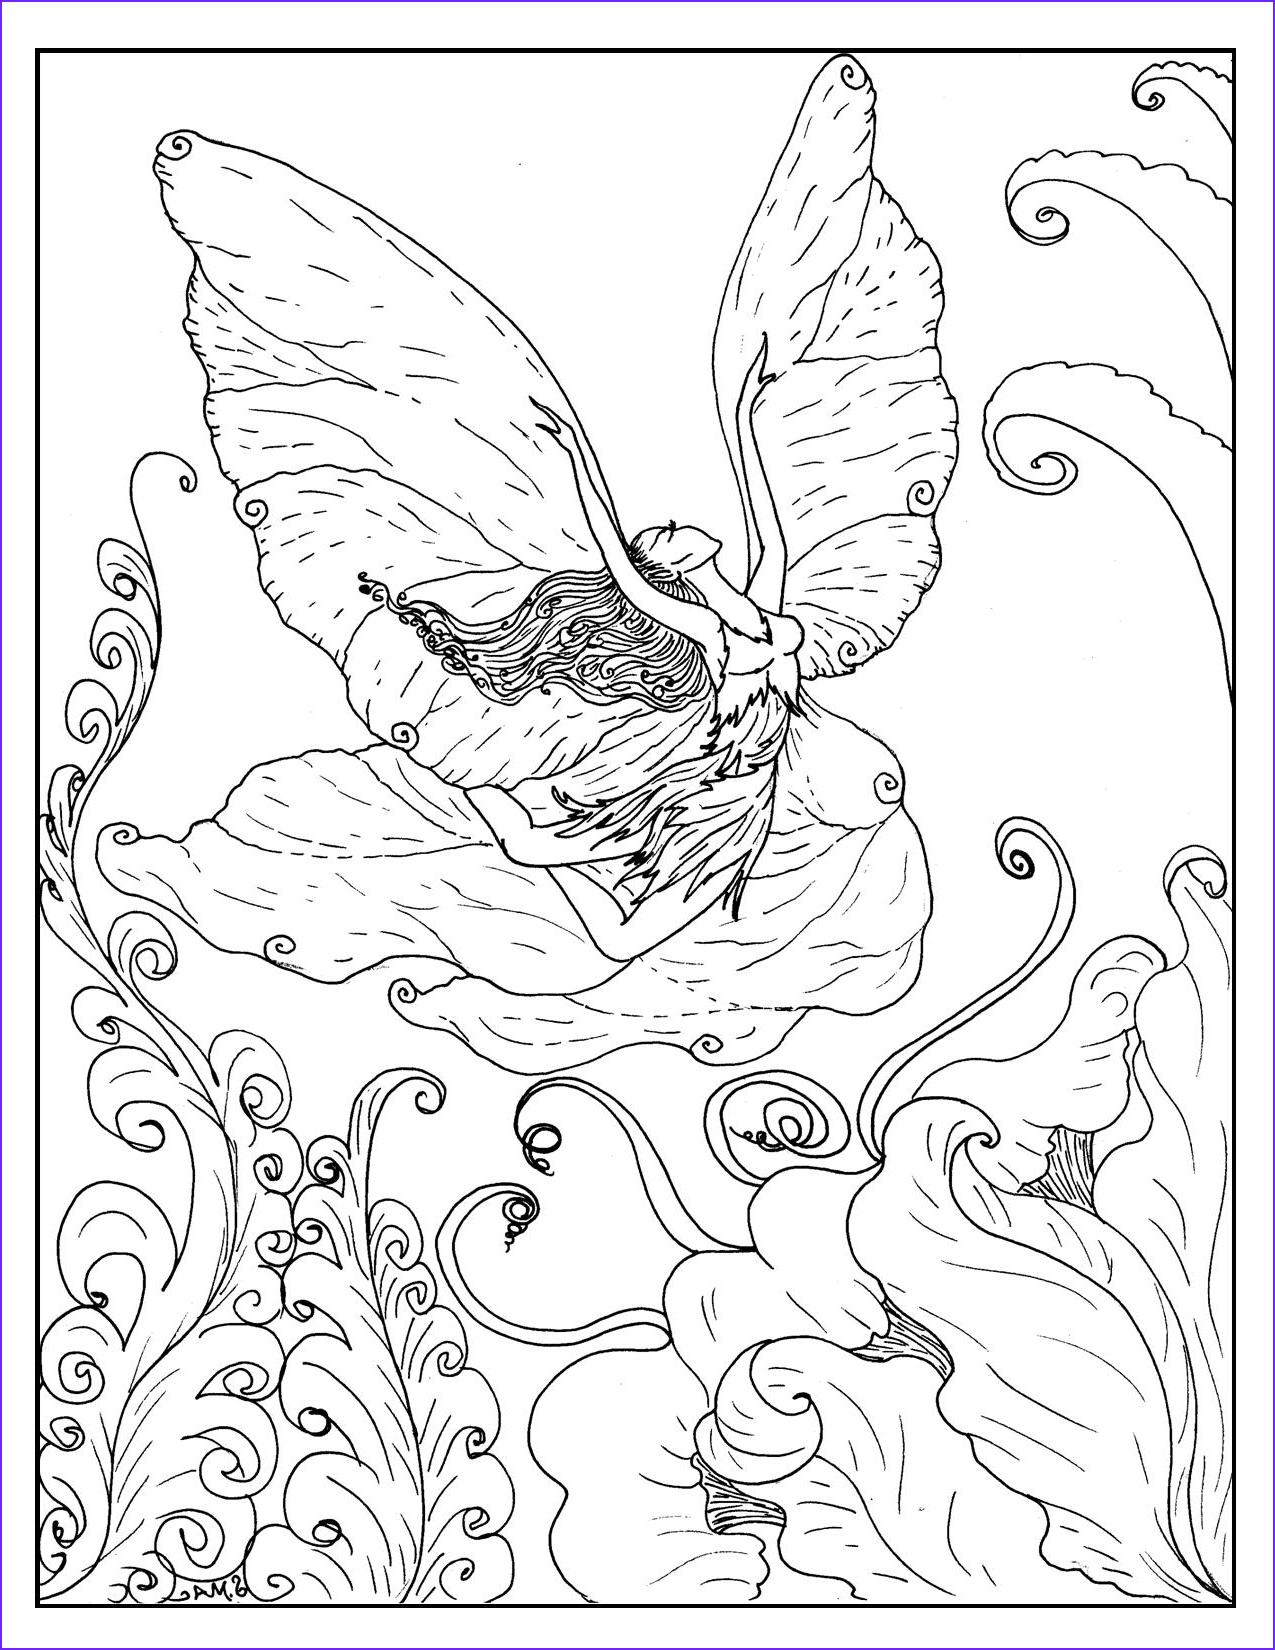 Free Fantasy Coloring Page New Image Fantasy Coloring Pages – S Mac S Place to Be